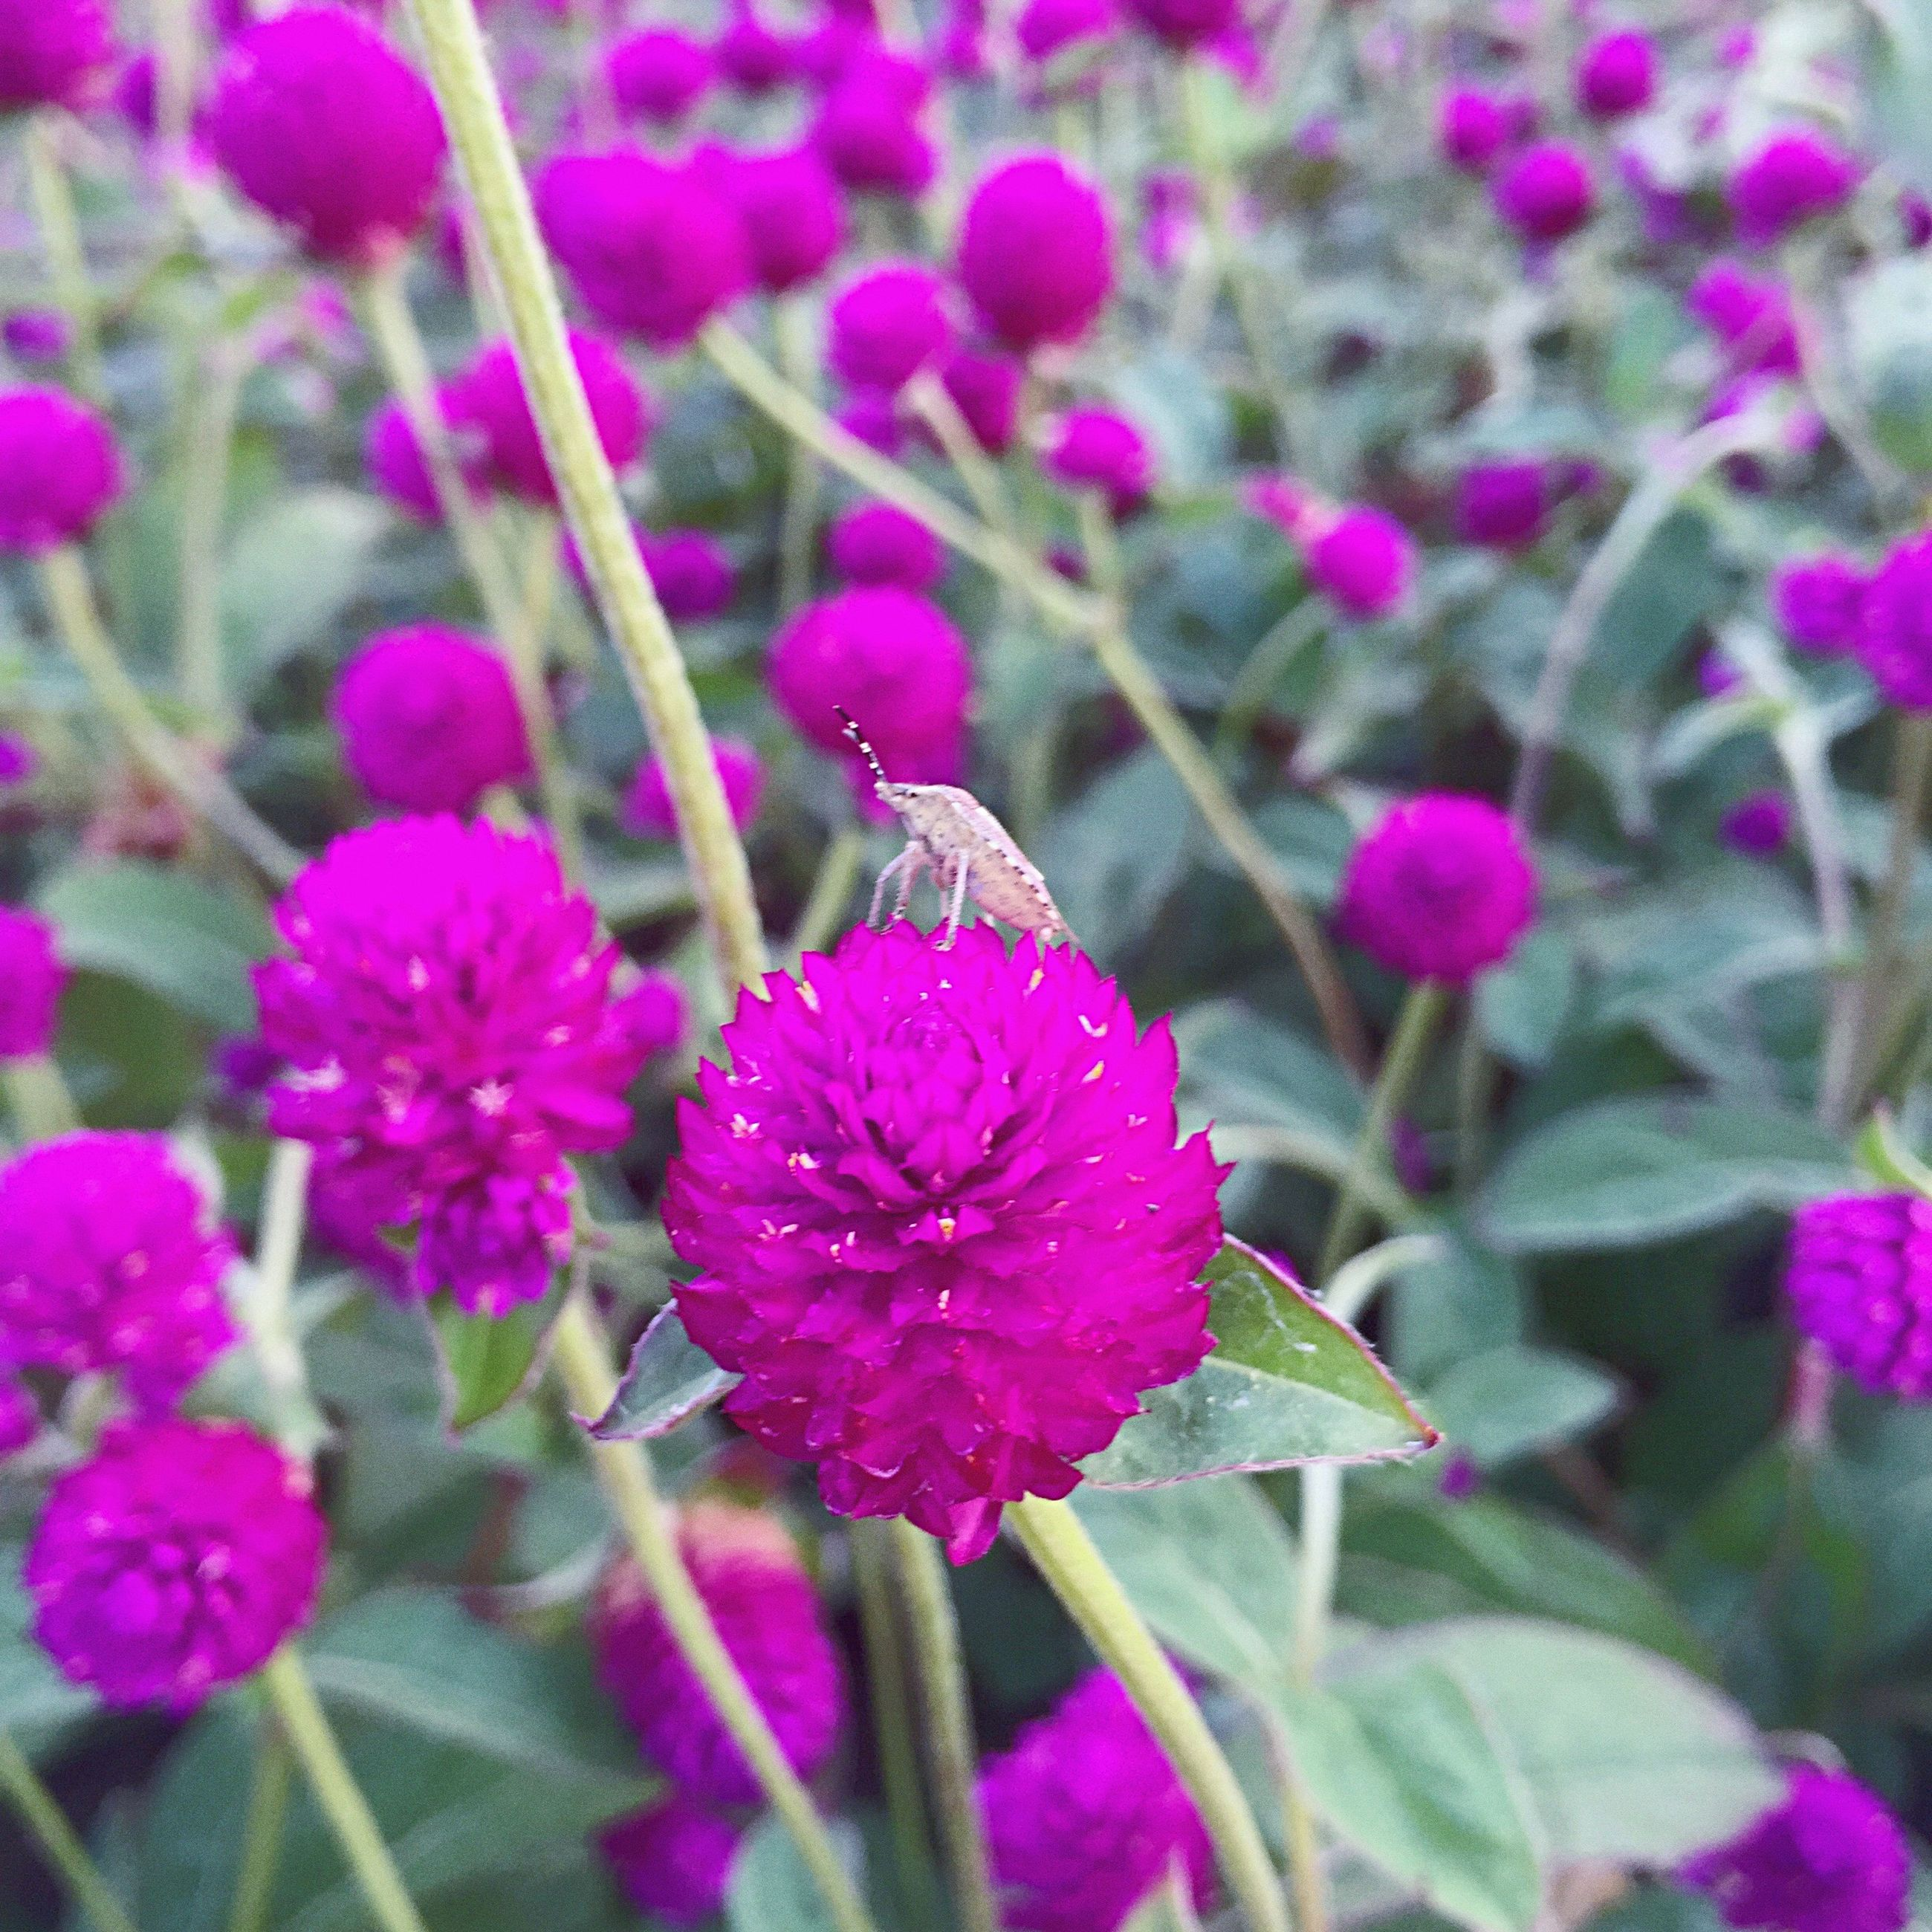 flower, freshness, fragility, growth, beauty in nature, close-up, in bloom, springtime, petal, stem, nature, plant, selective focus, pink color, blossom, botany, flower head, season, backgrounds, purple, focus on foreground, vibrant color, day, softness, full frame, outdoors, pink, soft focus, garden, formal garden